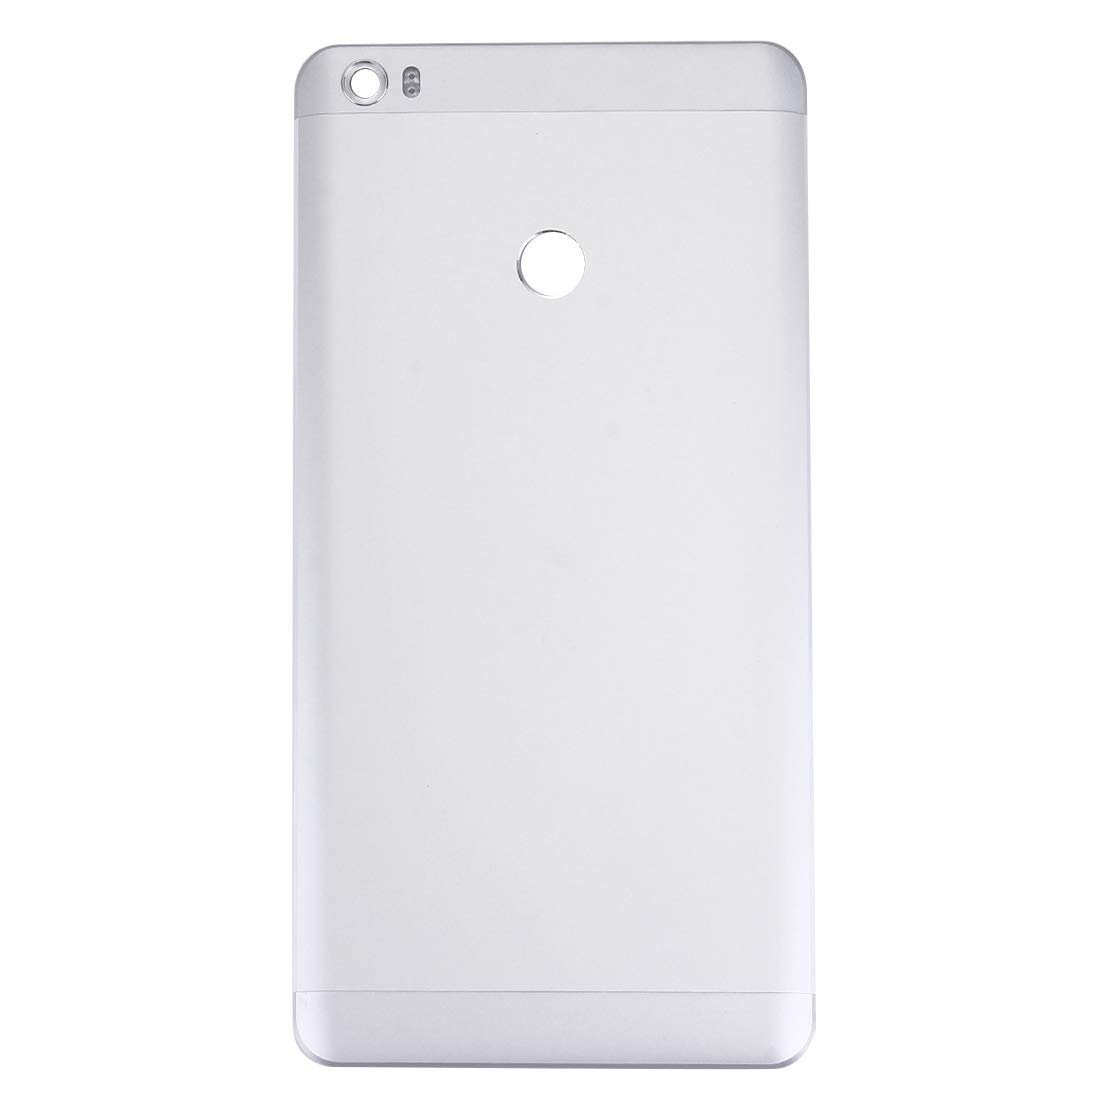 TTYD Professional Replacement for Xiaomi Mi Max Battery Back Cover (Side Keys not Included)(Gold) Spare Parts (Color : Silver) by TTYD